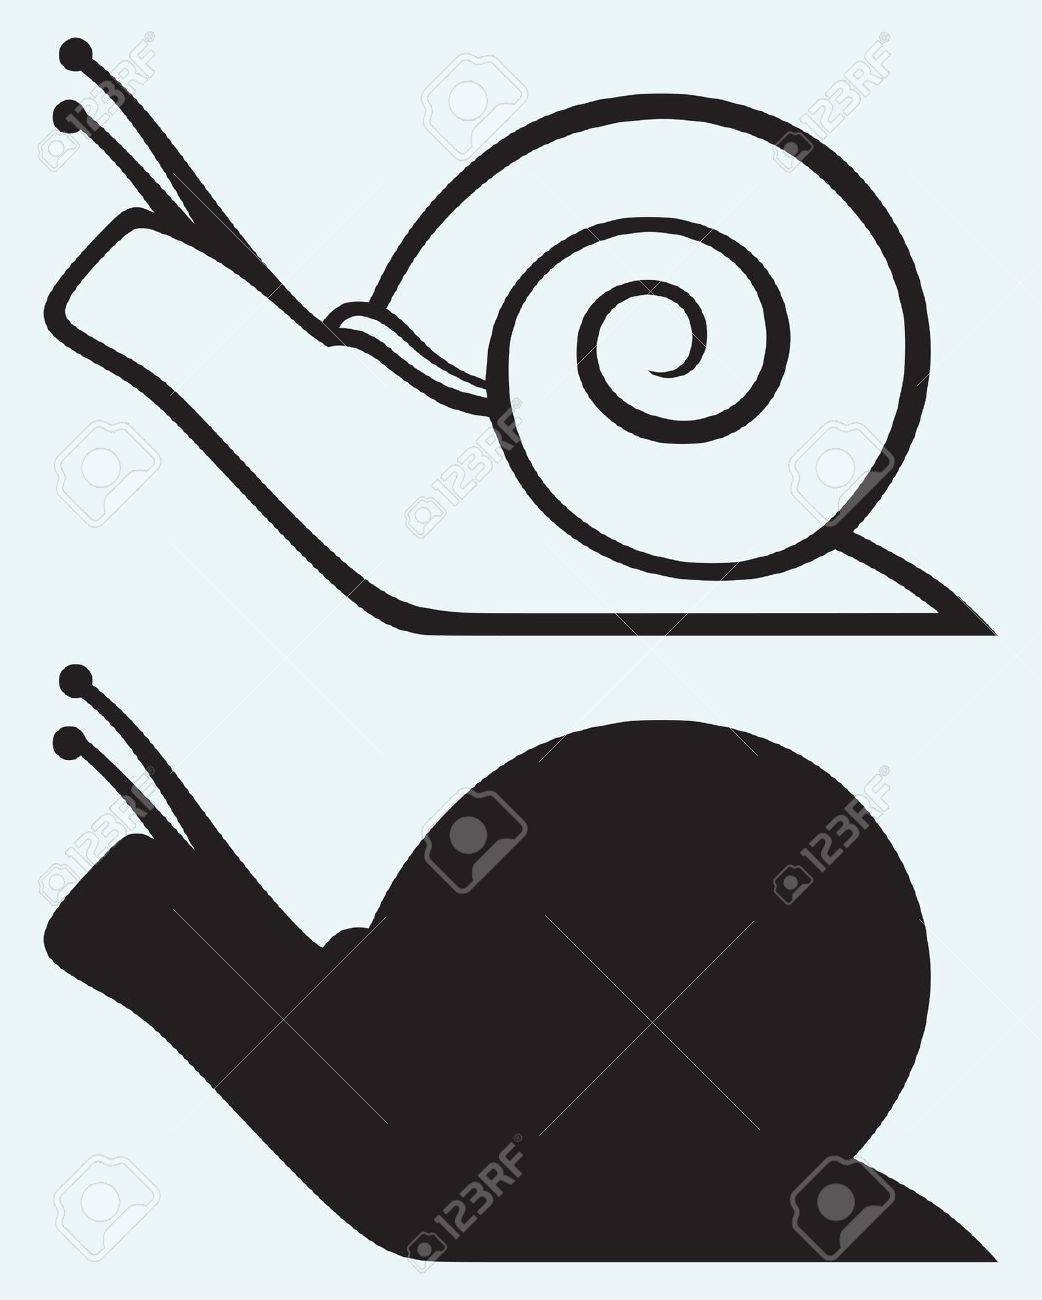 snail isolated on blue background royalty free cliparts vectors